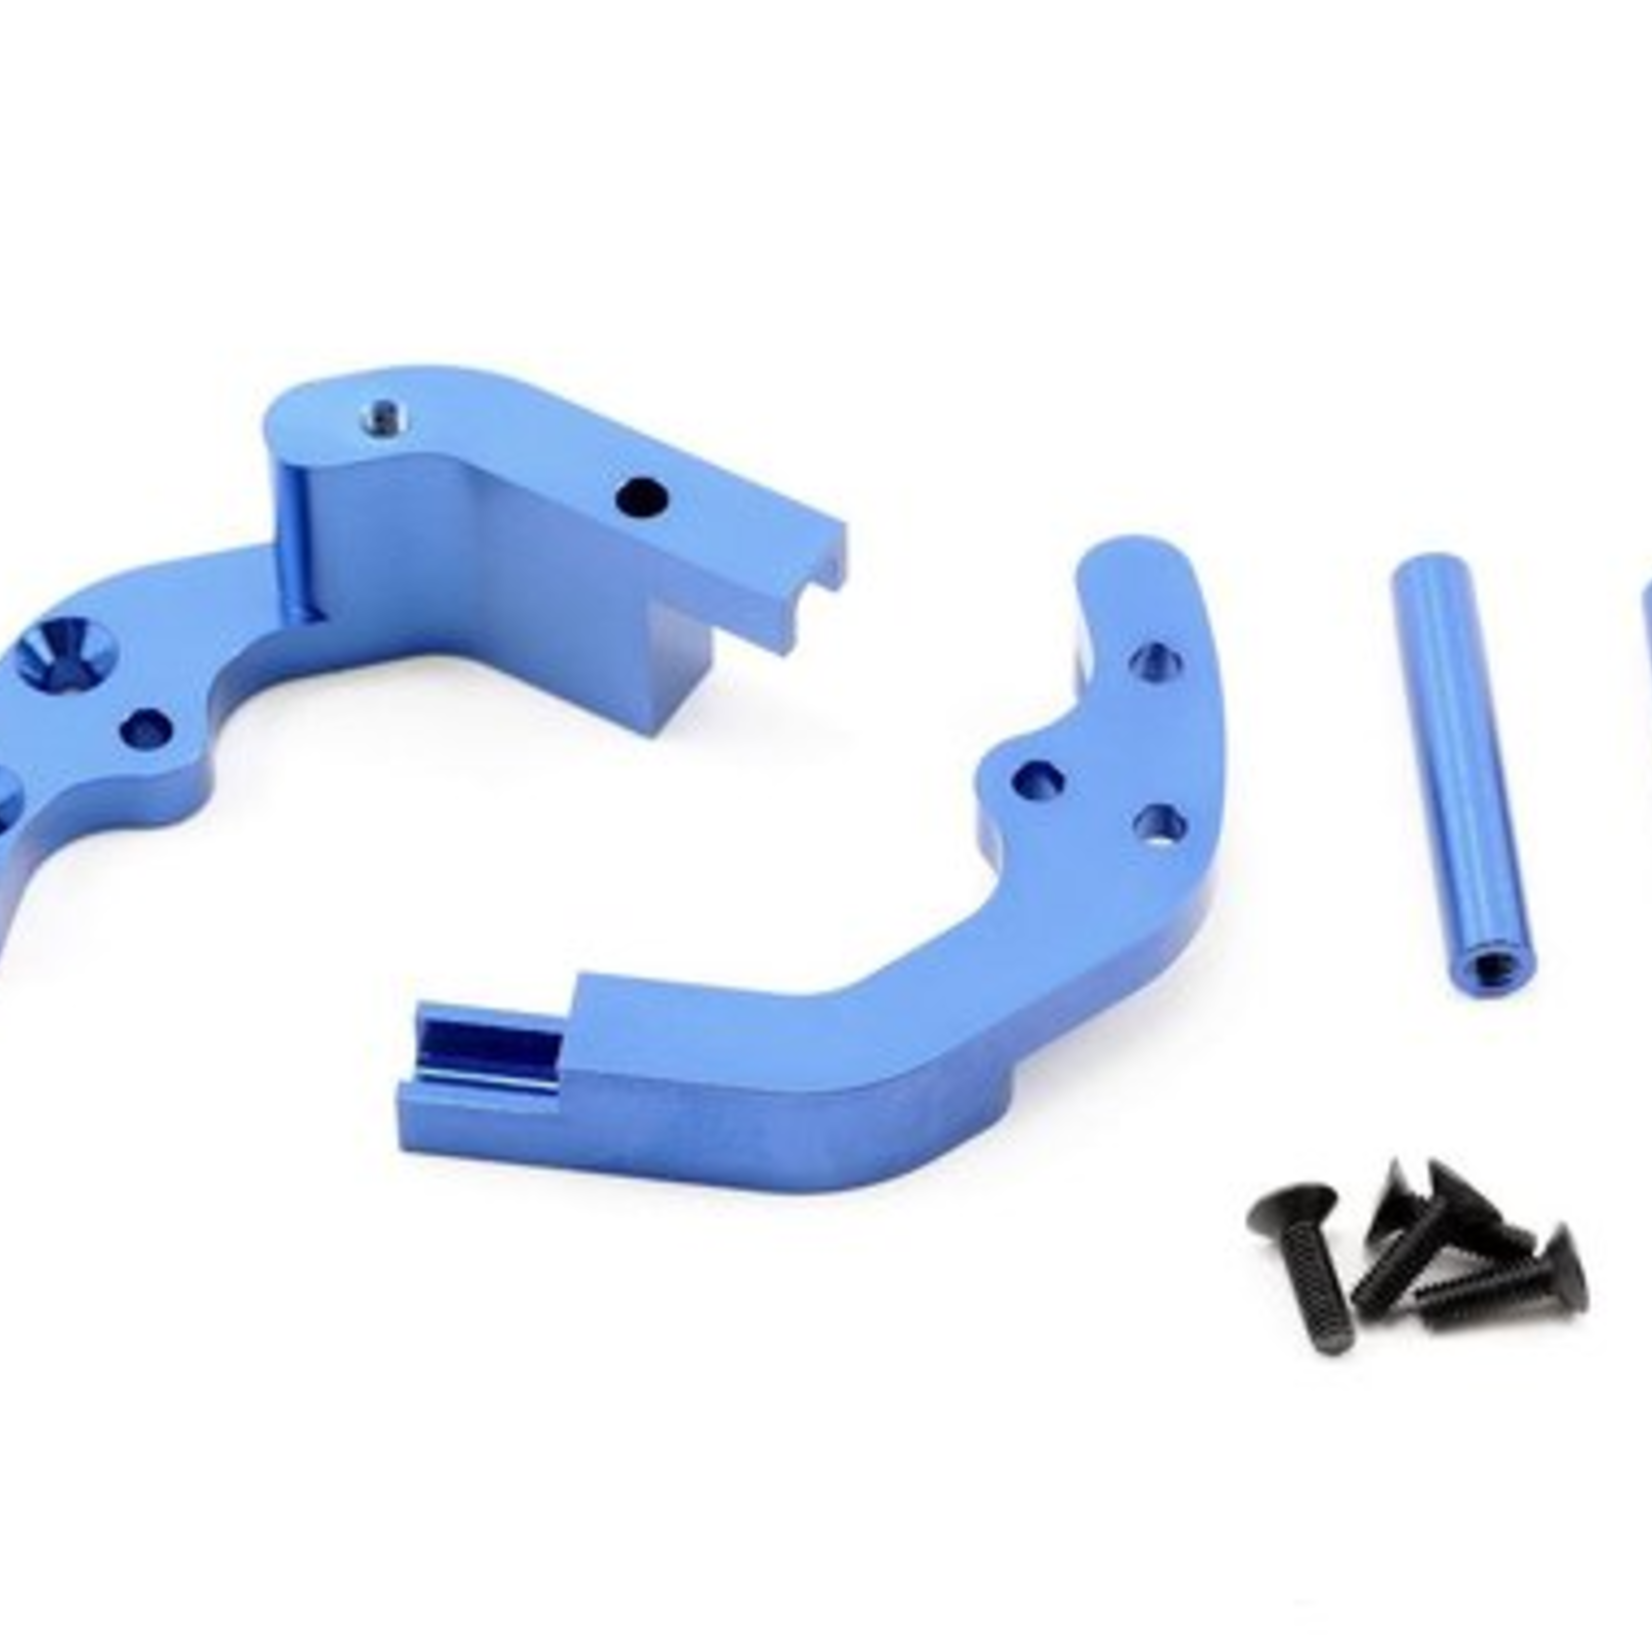 ST Racing Concepts SPTST3677B ST Racing Concepts CNC Machined Aluminum Rear Motor Guard for Traxxas cars/trucks (Blue)